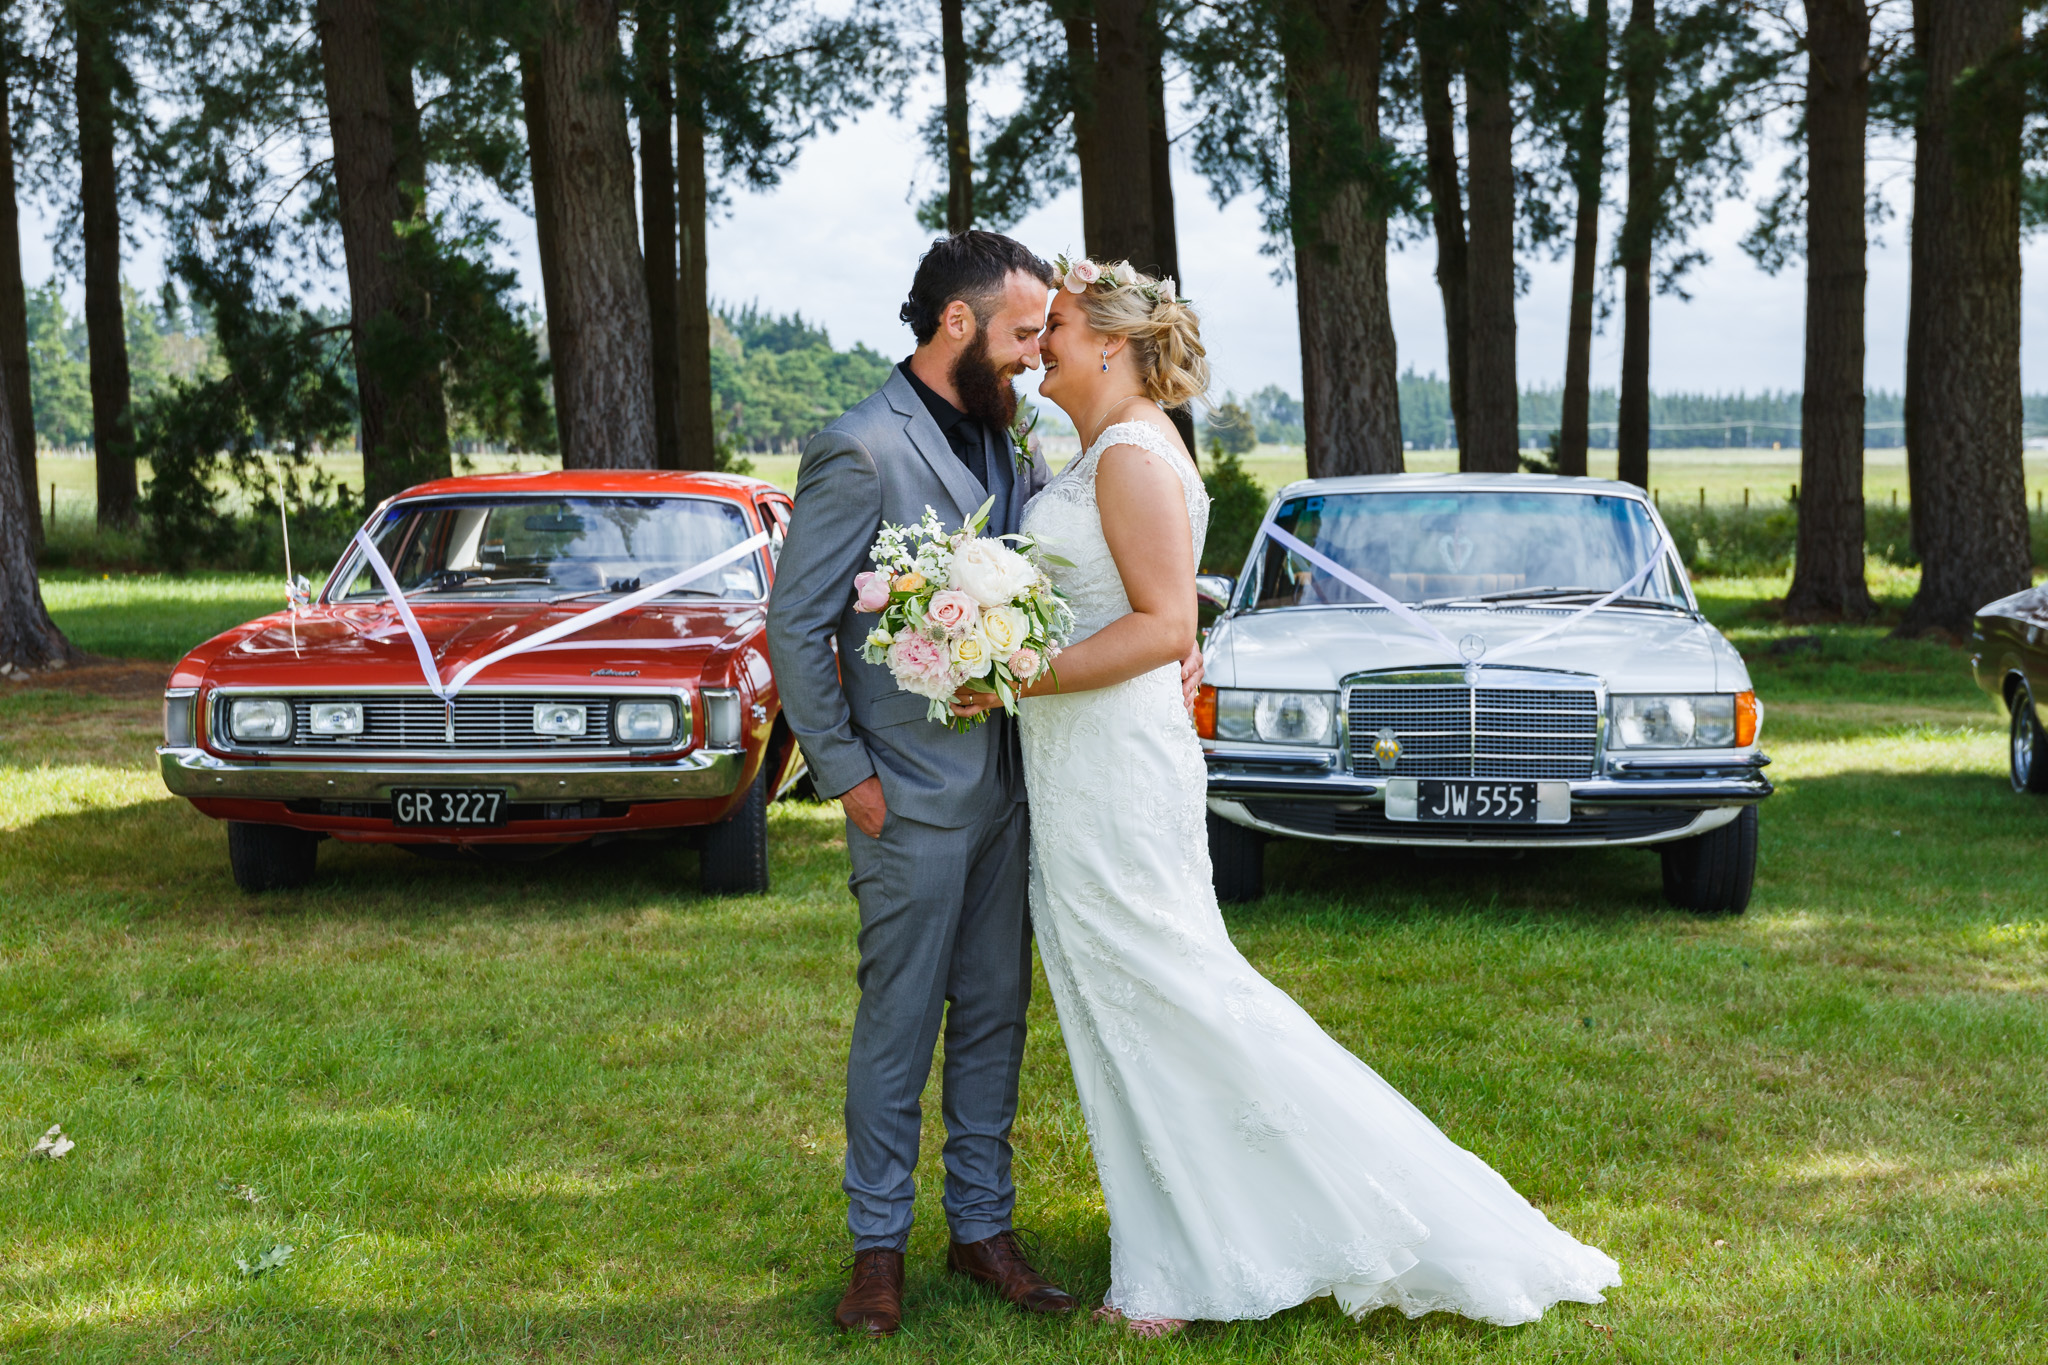 Hannah and Dan's wedding, Palmerston North, New Zealand